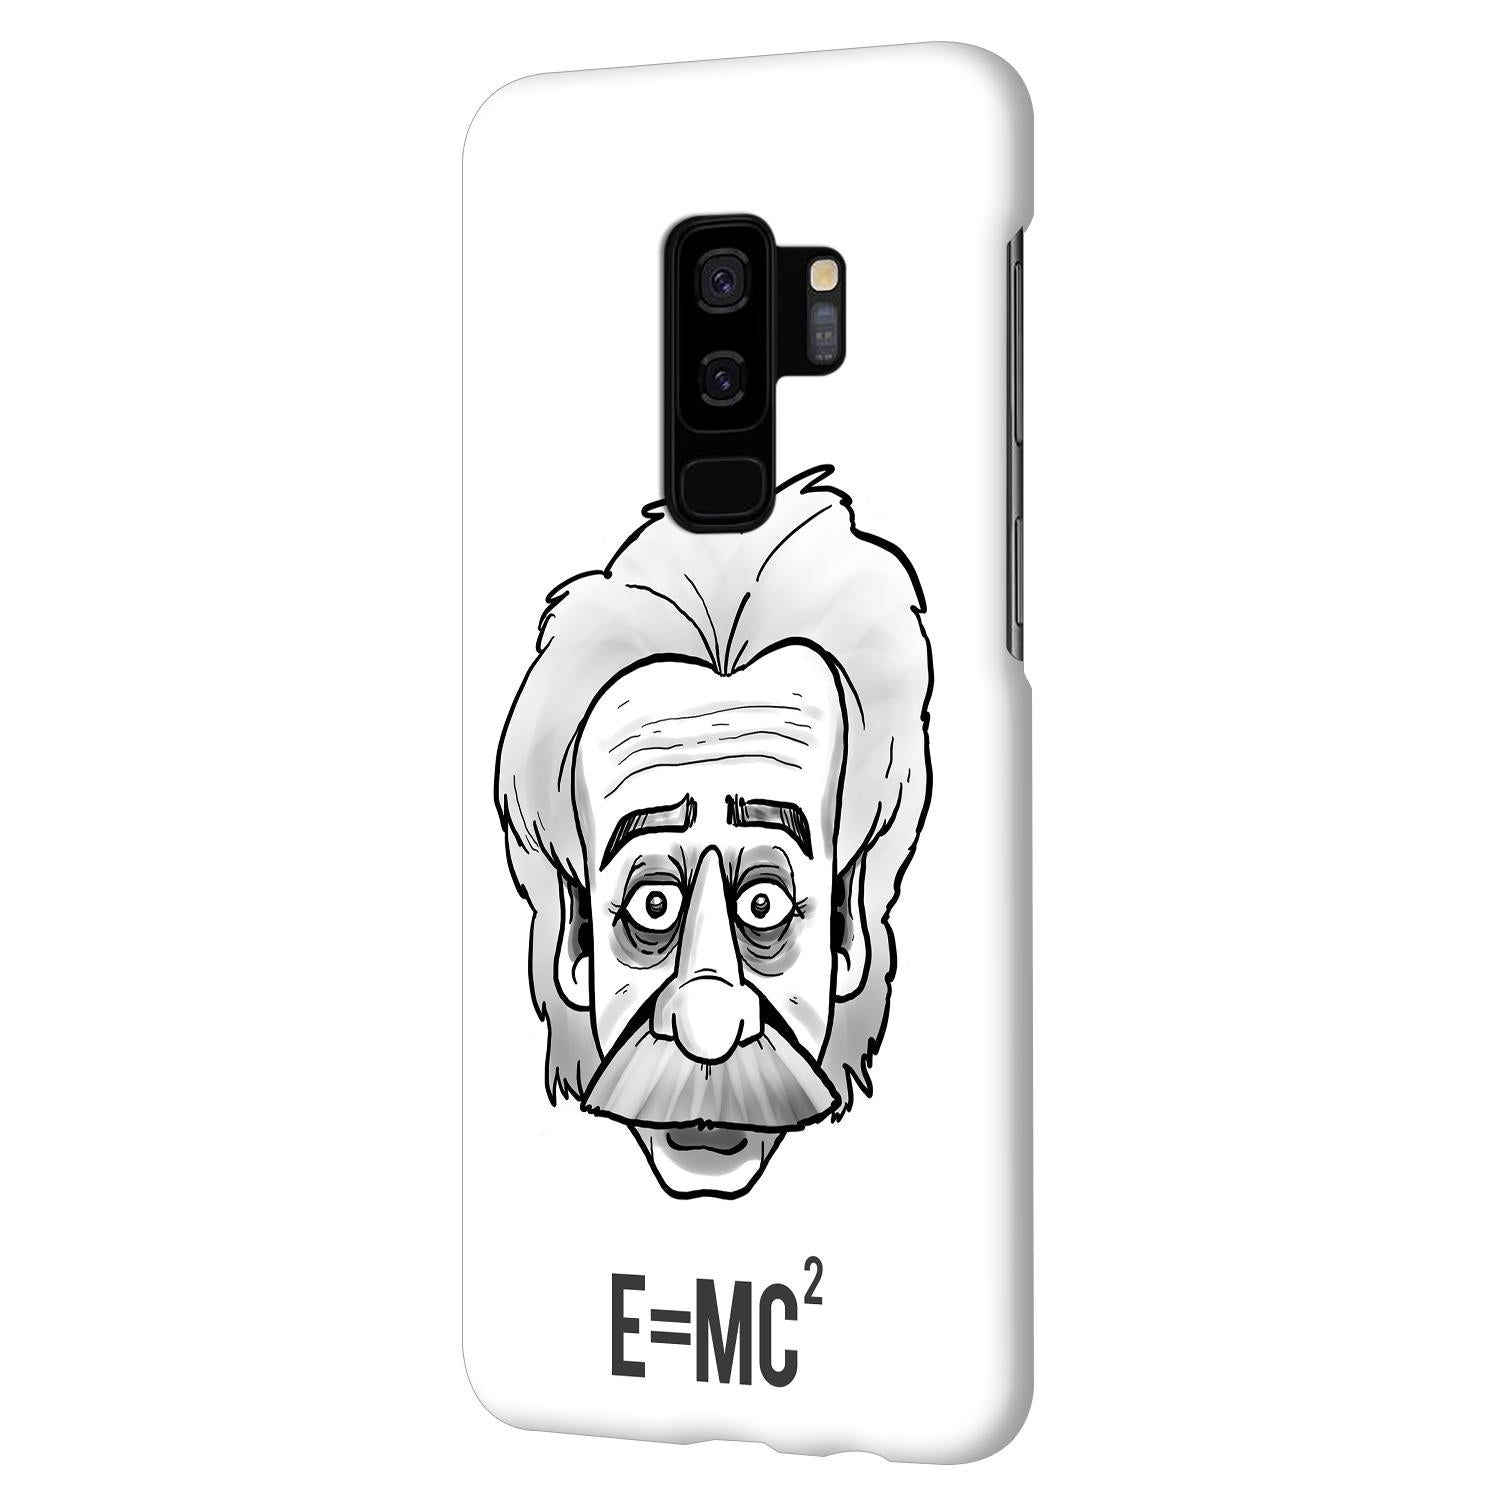 Einstein Equation Samsung Galaxy S9 Plus Mobile Cover Case